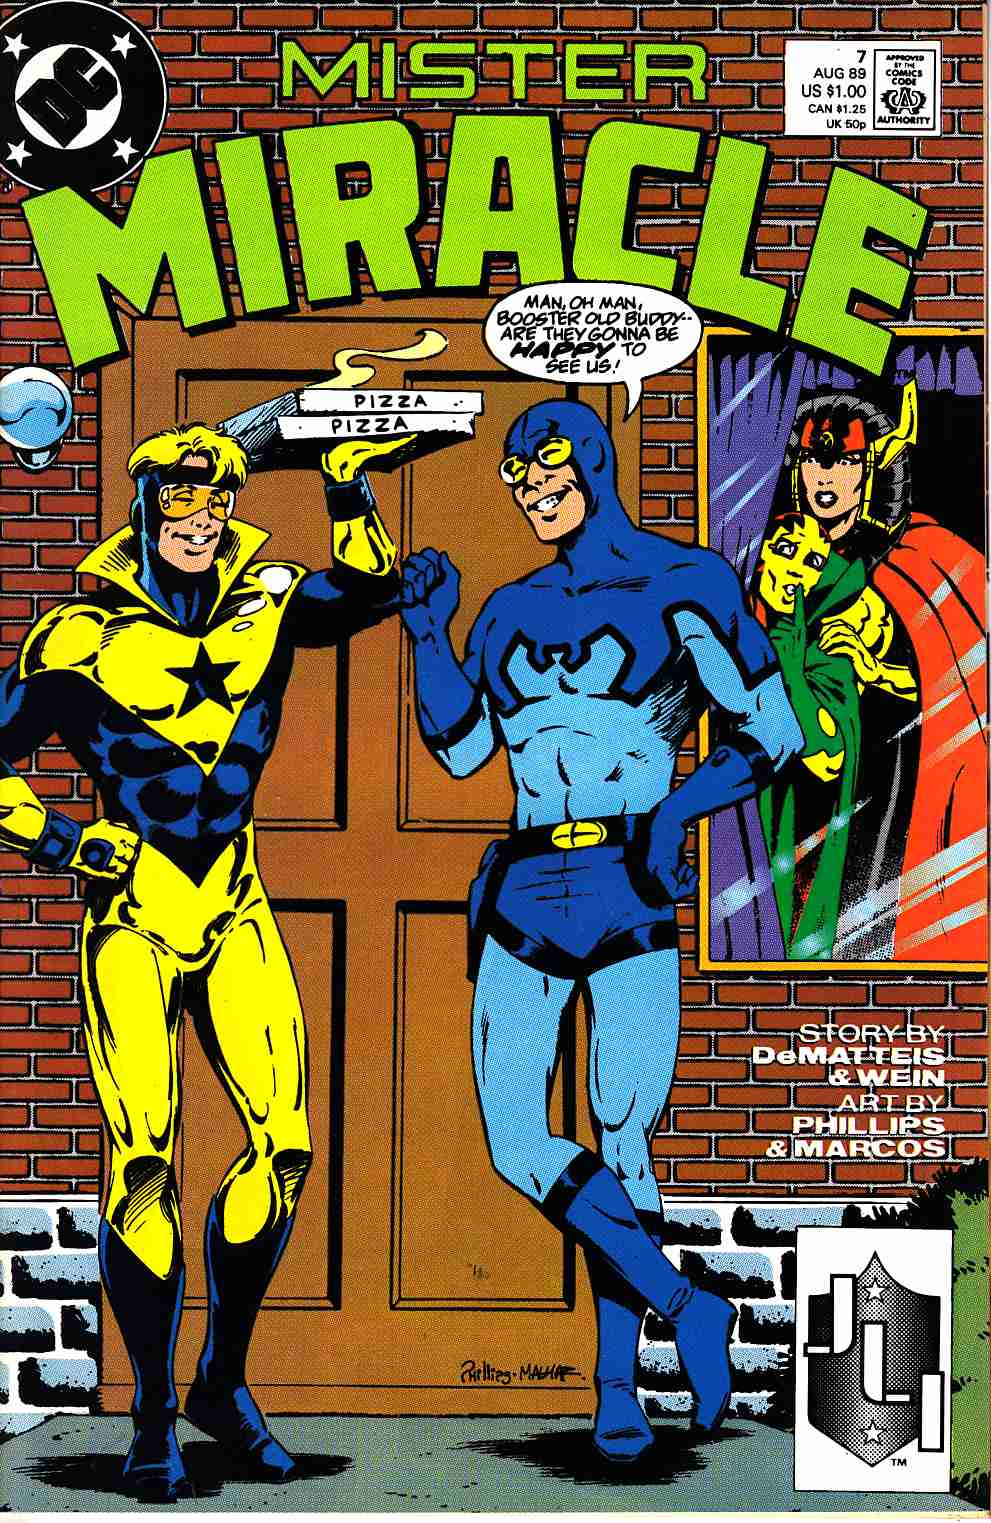 Mister Miracle #7 Near Mint (9.4) [DC Comic] THUMBNAIL